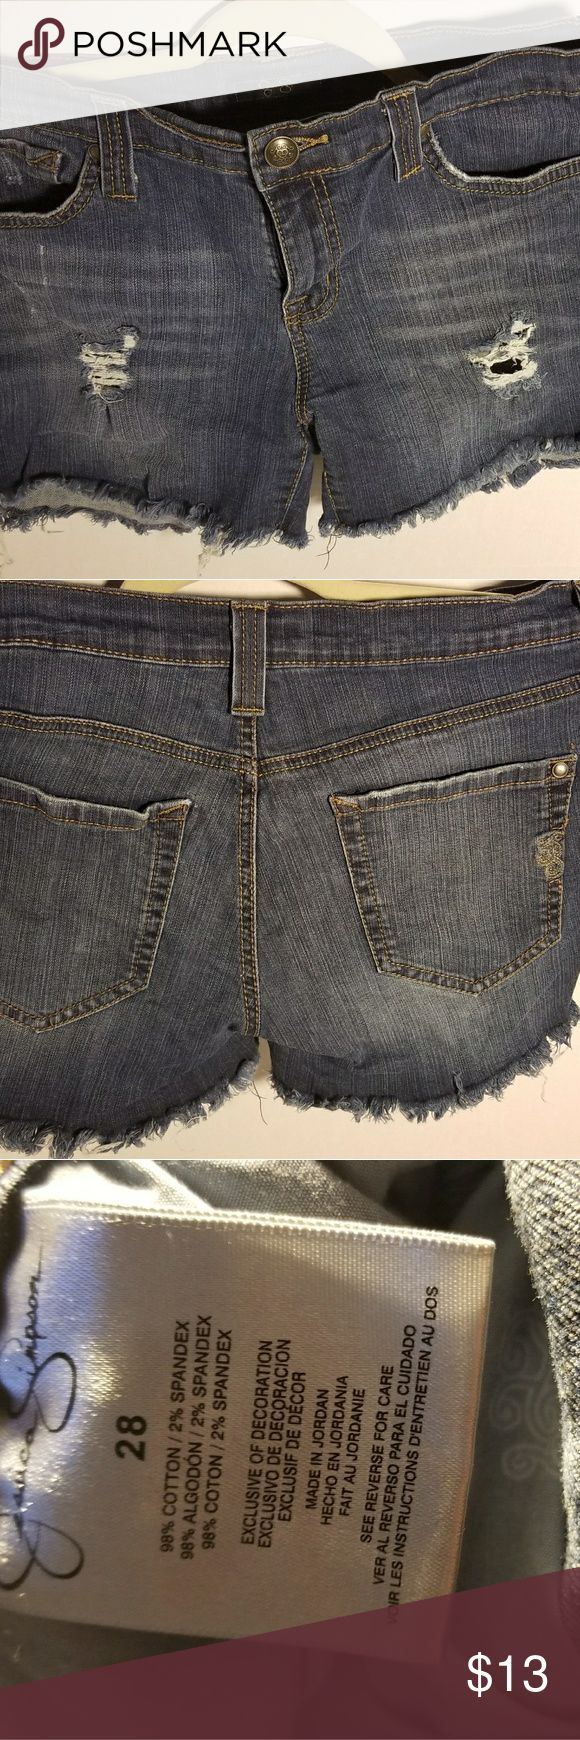 Jessica Simpson Cut Off Distressed Shorts 28 Great like new condition, factory cutoff not homemade.  Size 28. Jessica Simpson Shorts Jean Shorts